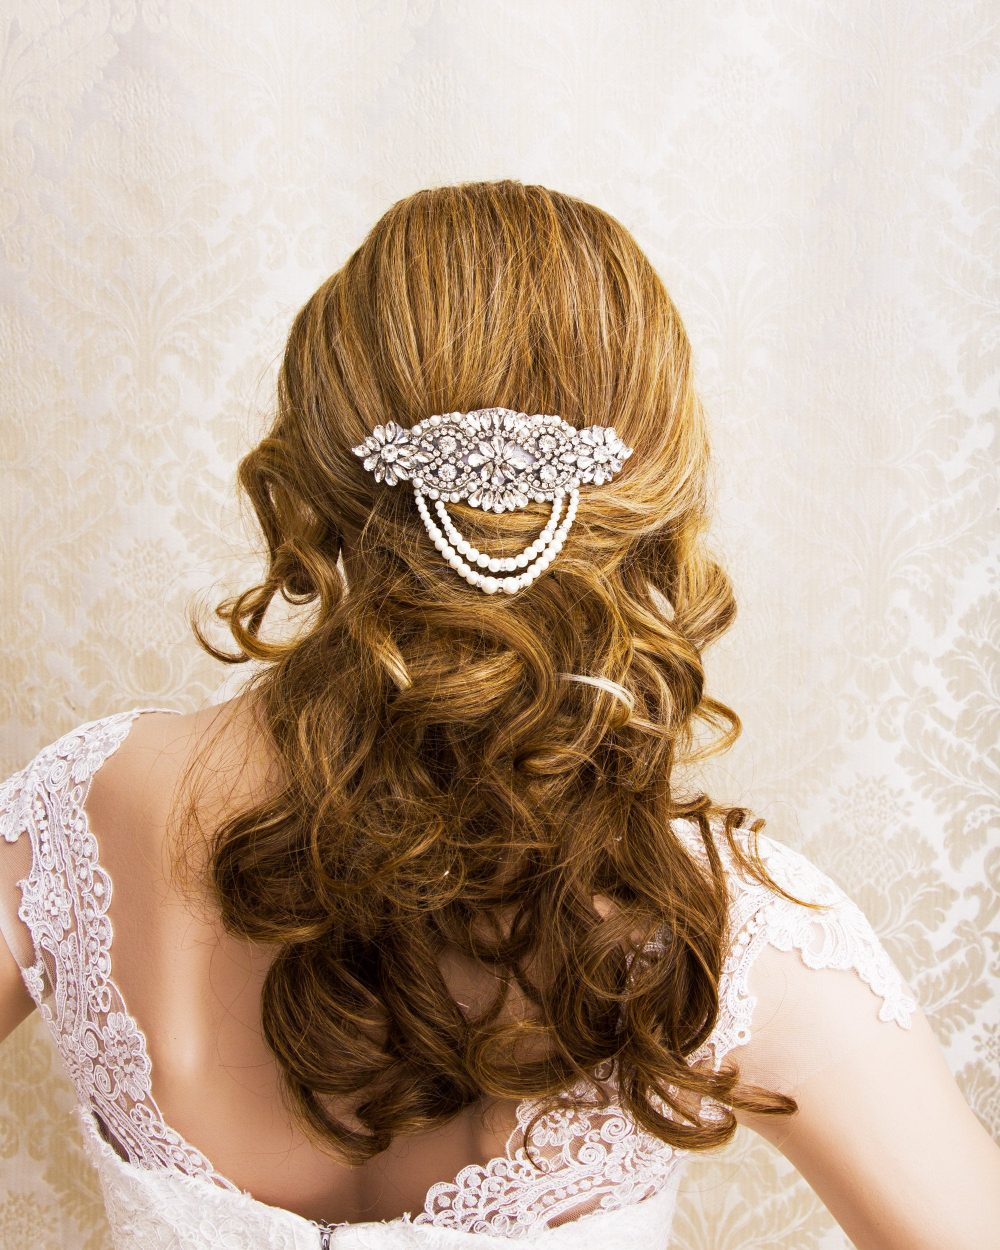 Wedding Hair Comb, Pearl Bridal Accessories, Wedding Crystal Vintage Comb, Bridal Jewelry